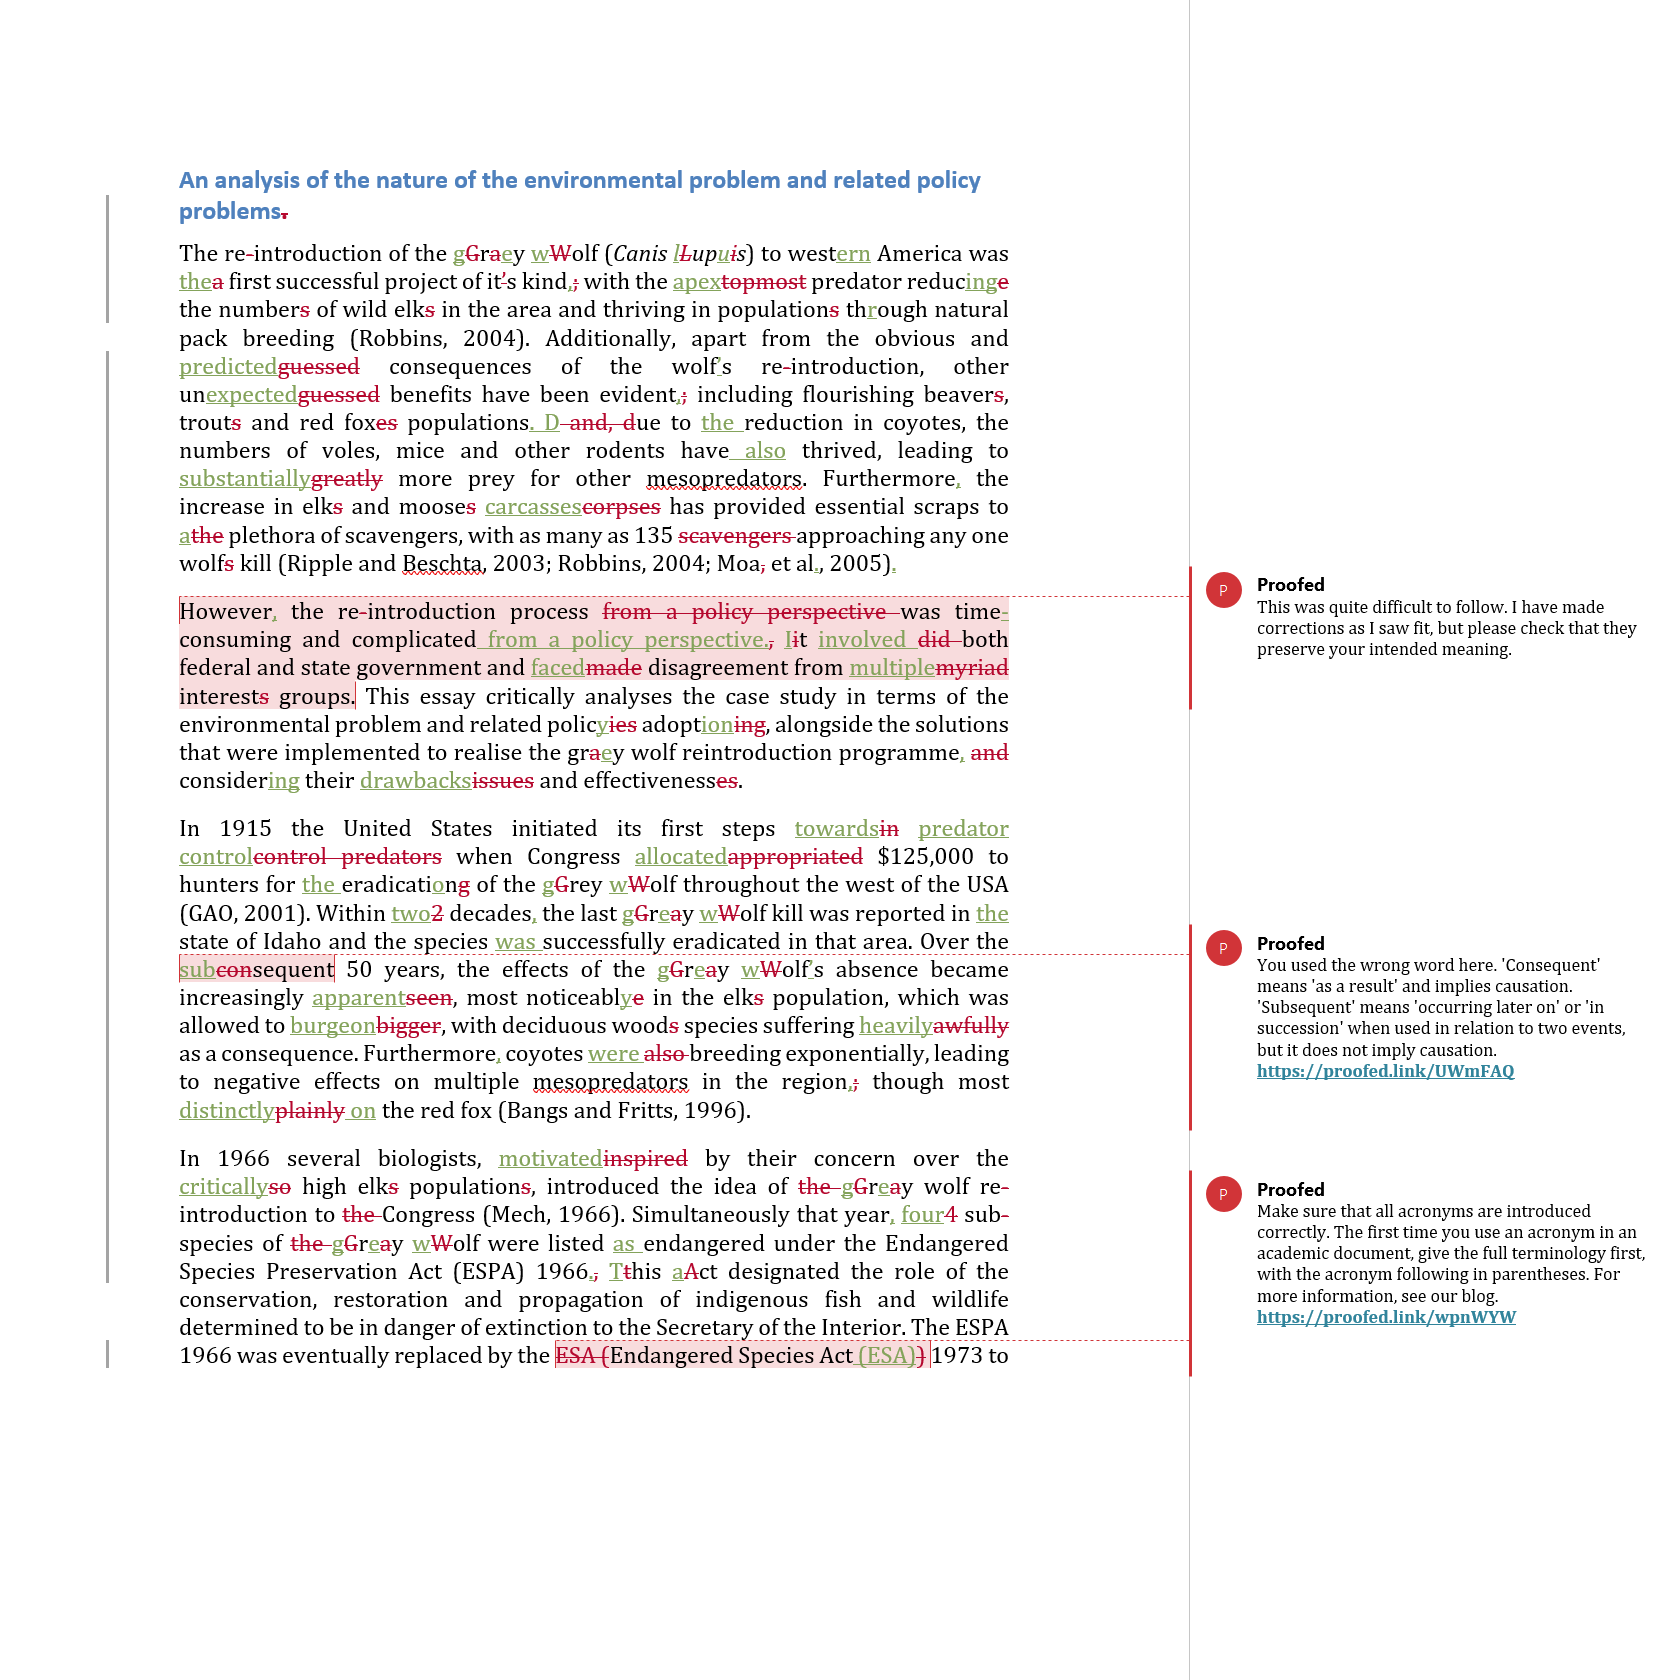 Essay Proofreading Example (After Editing)